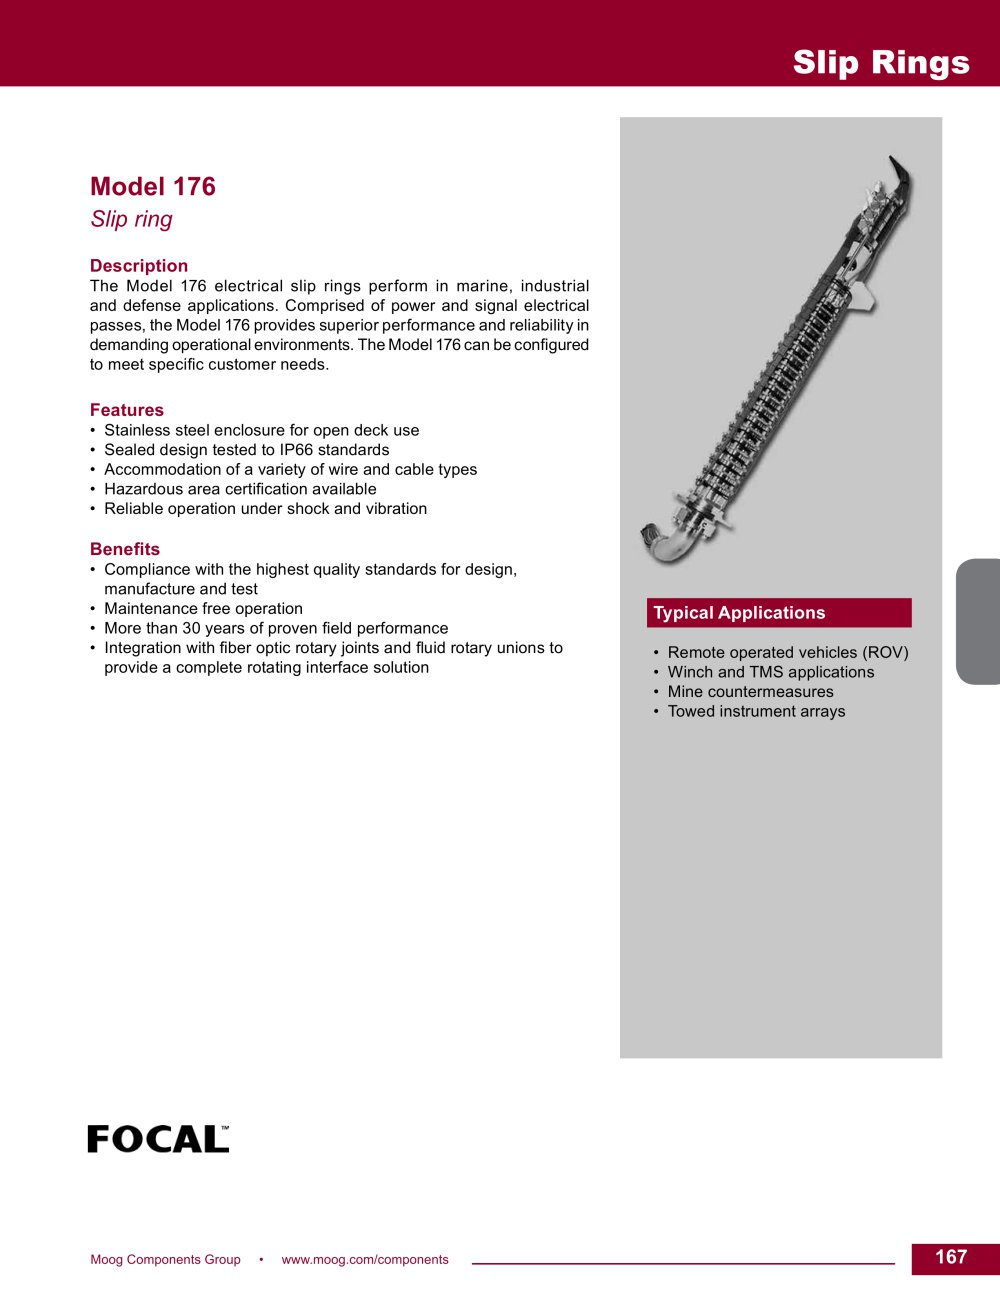 Model 176 - Moog Components Group - PDF Catalogues | Documentation ...